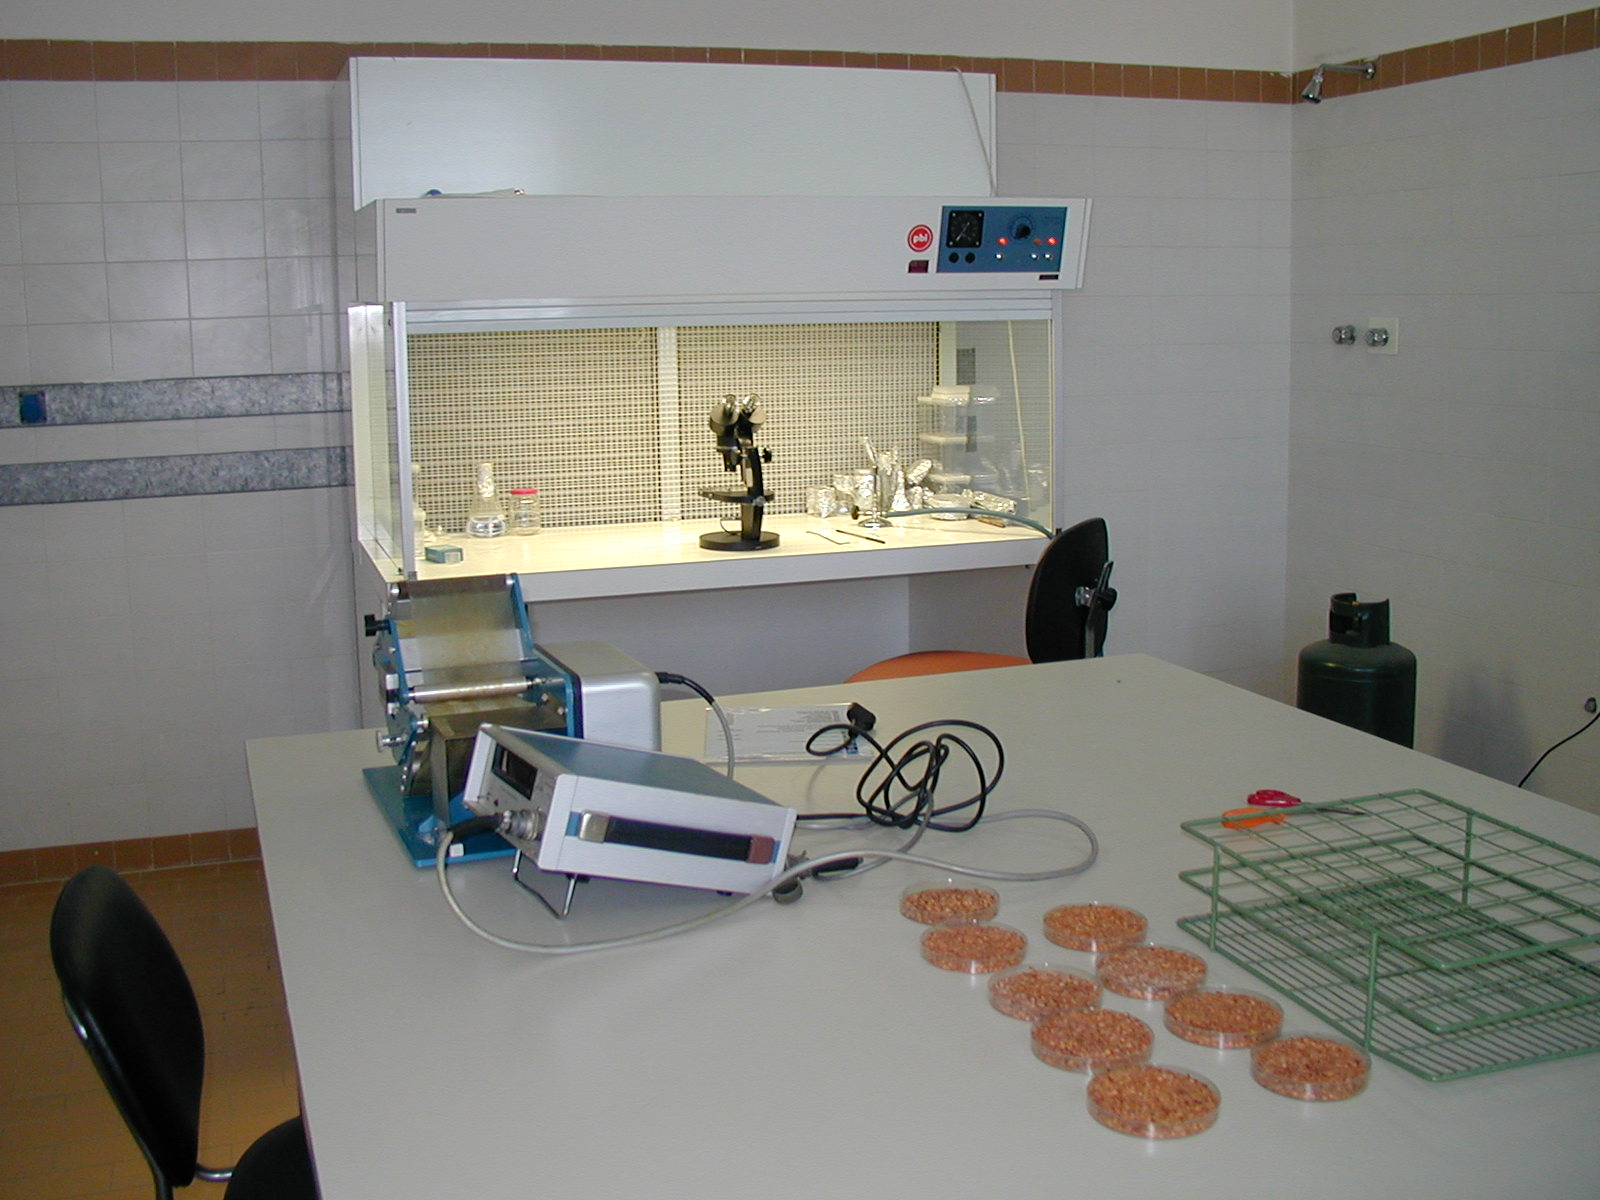 Seed analysis laboratory and horizontal laminar flow